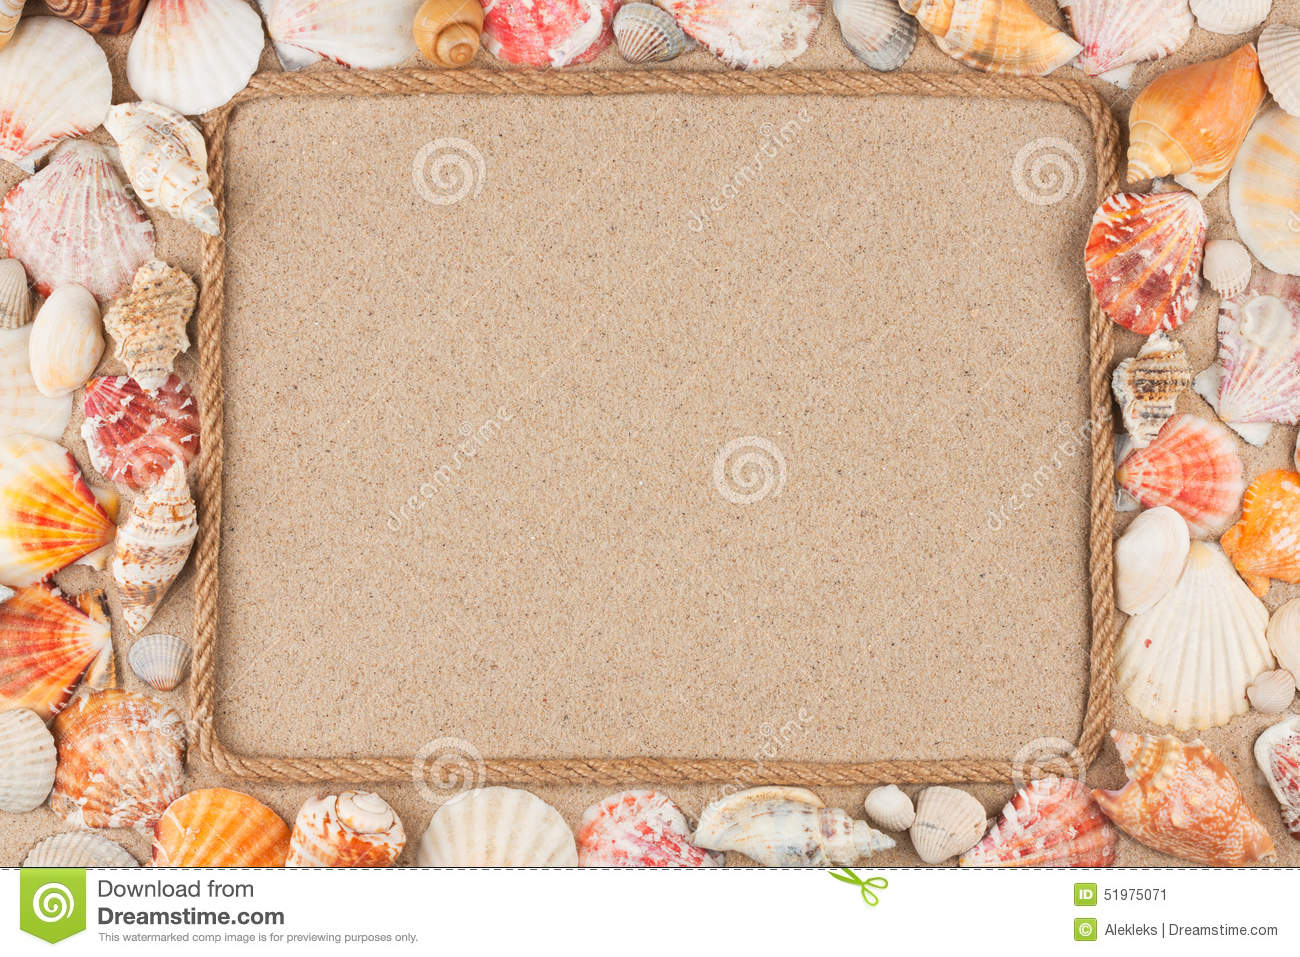 beautiful frame made of rope with seashells on the sand seashells clipart png seashell clipart freeware black and white